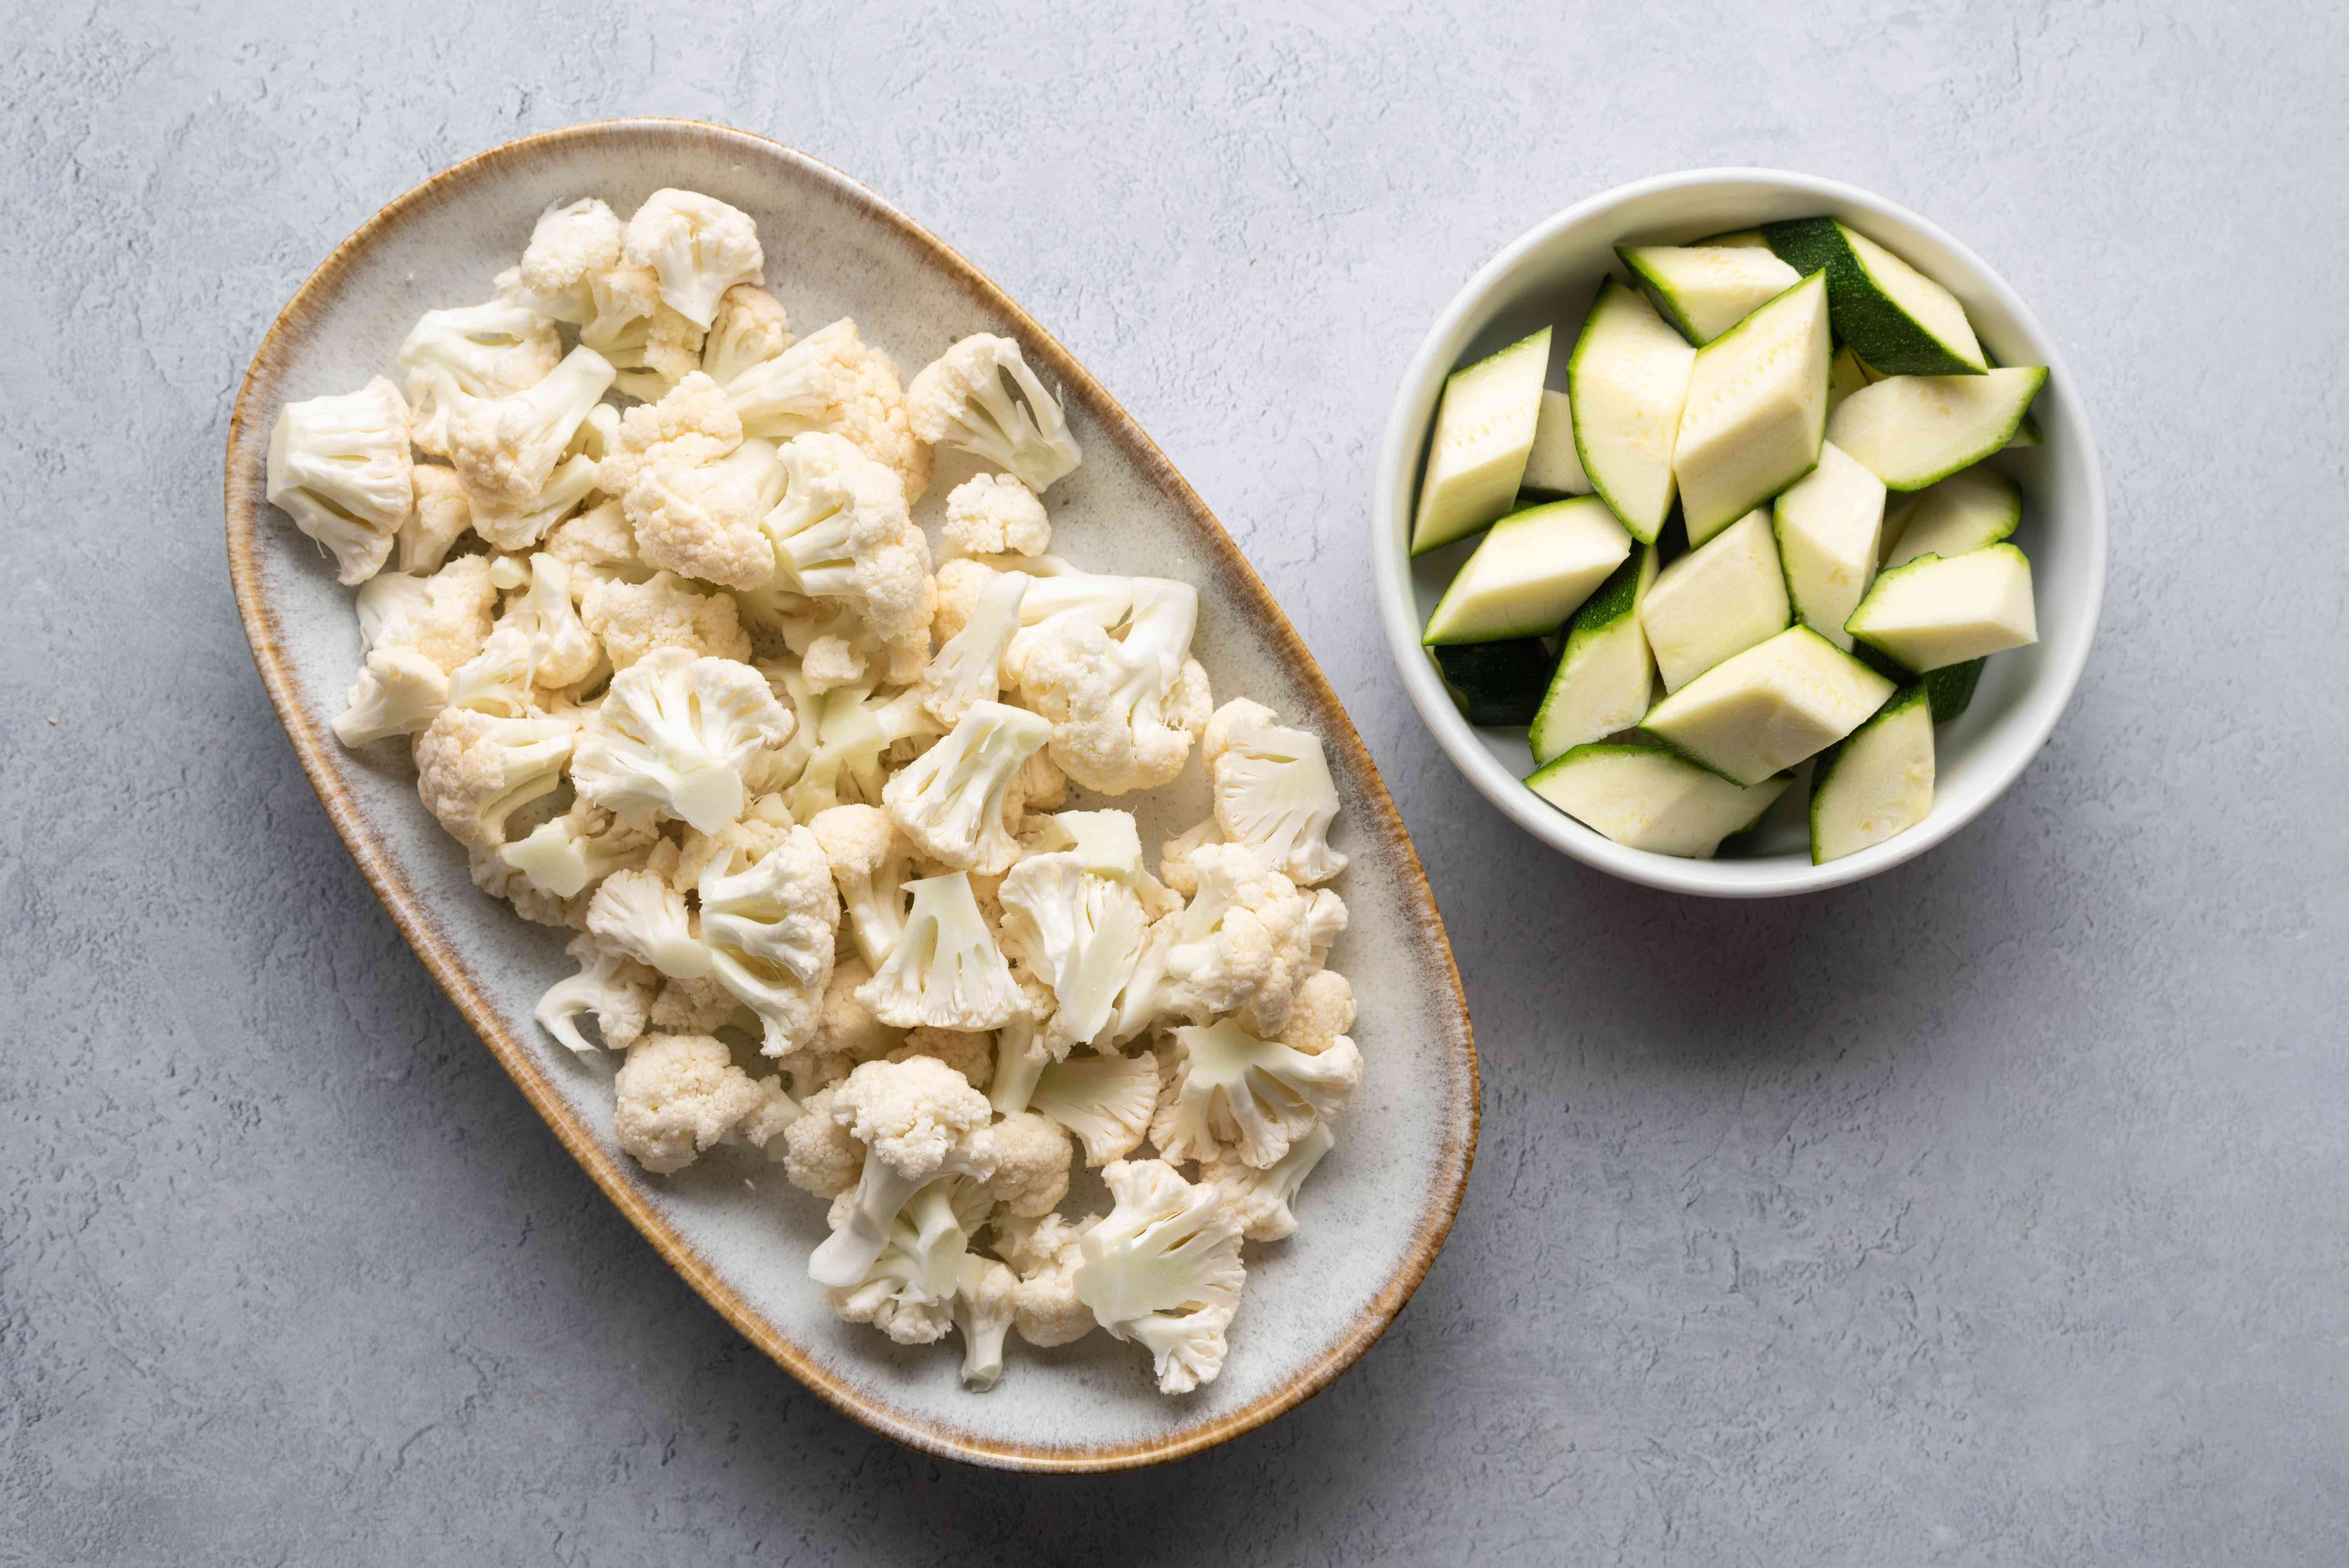 Cauliflower and zucchini pieces in bowls